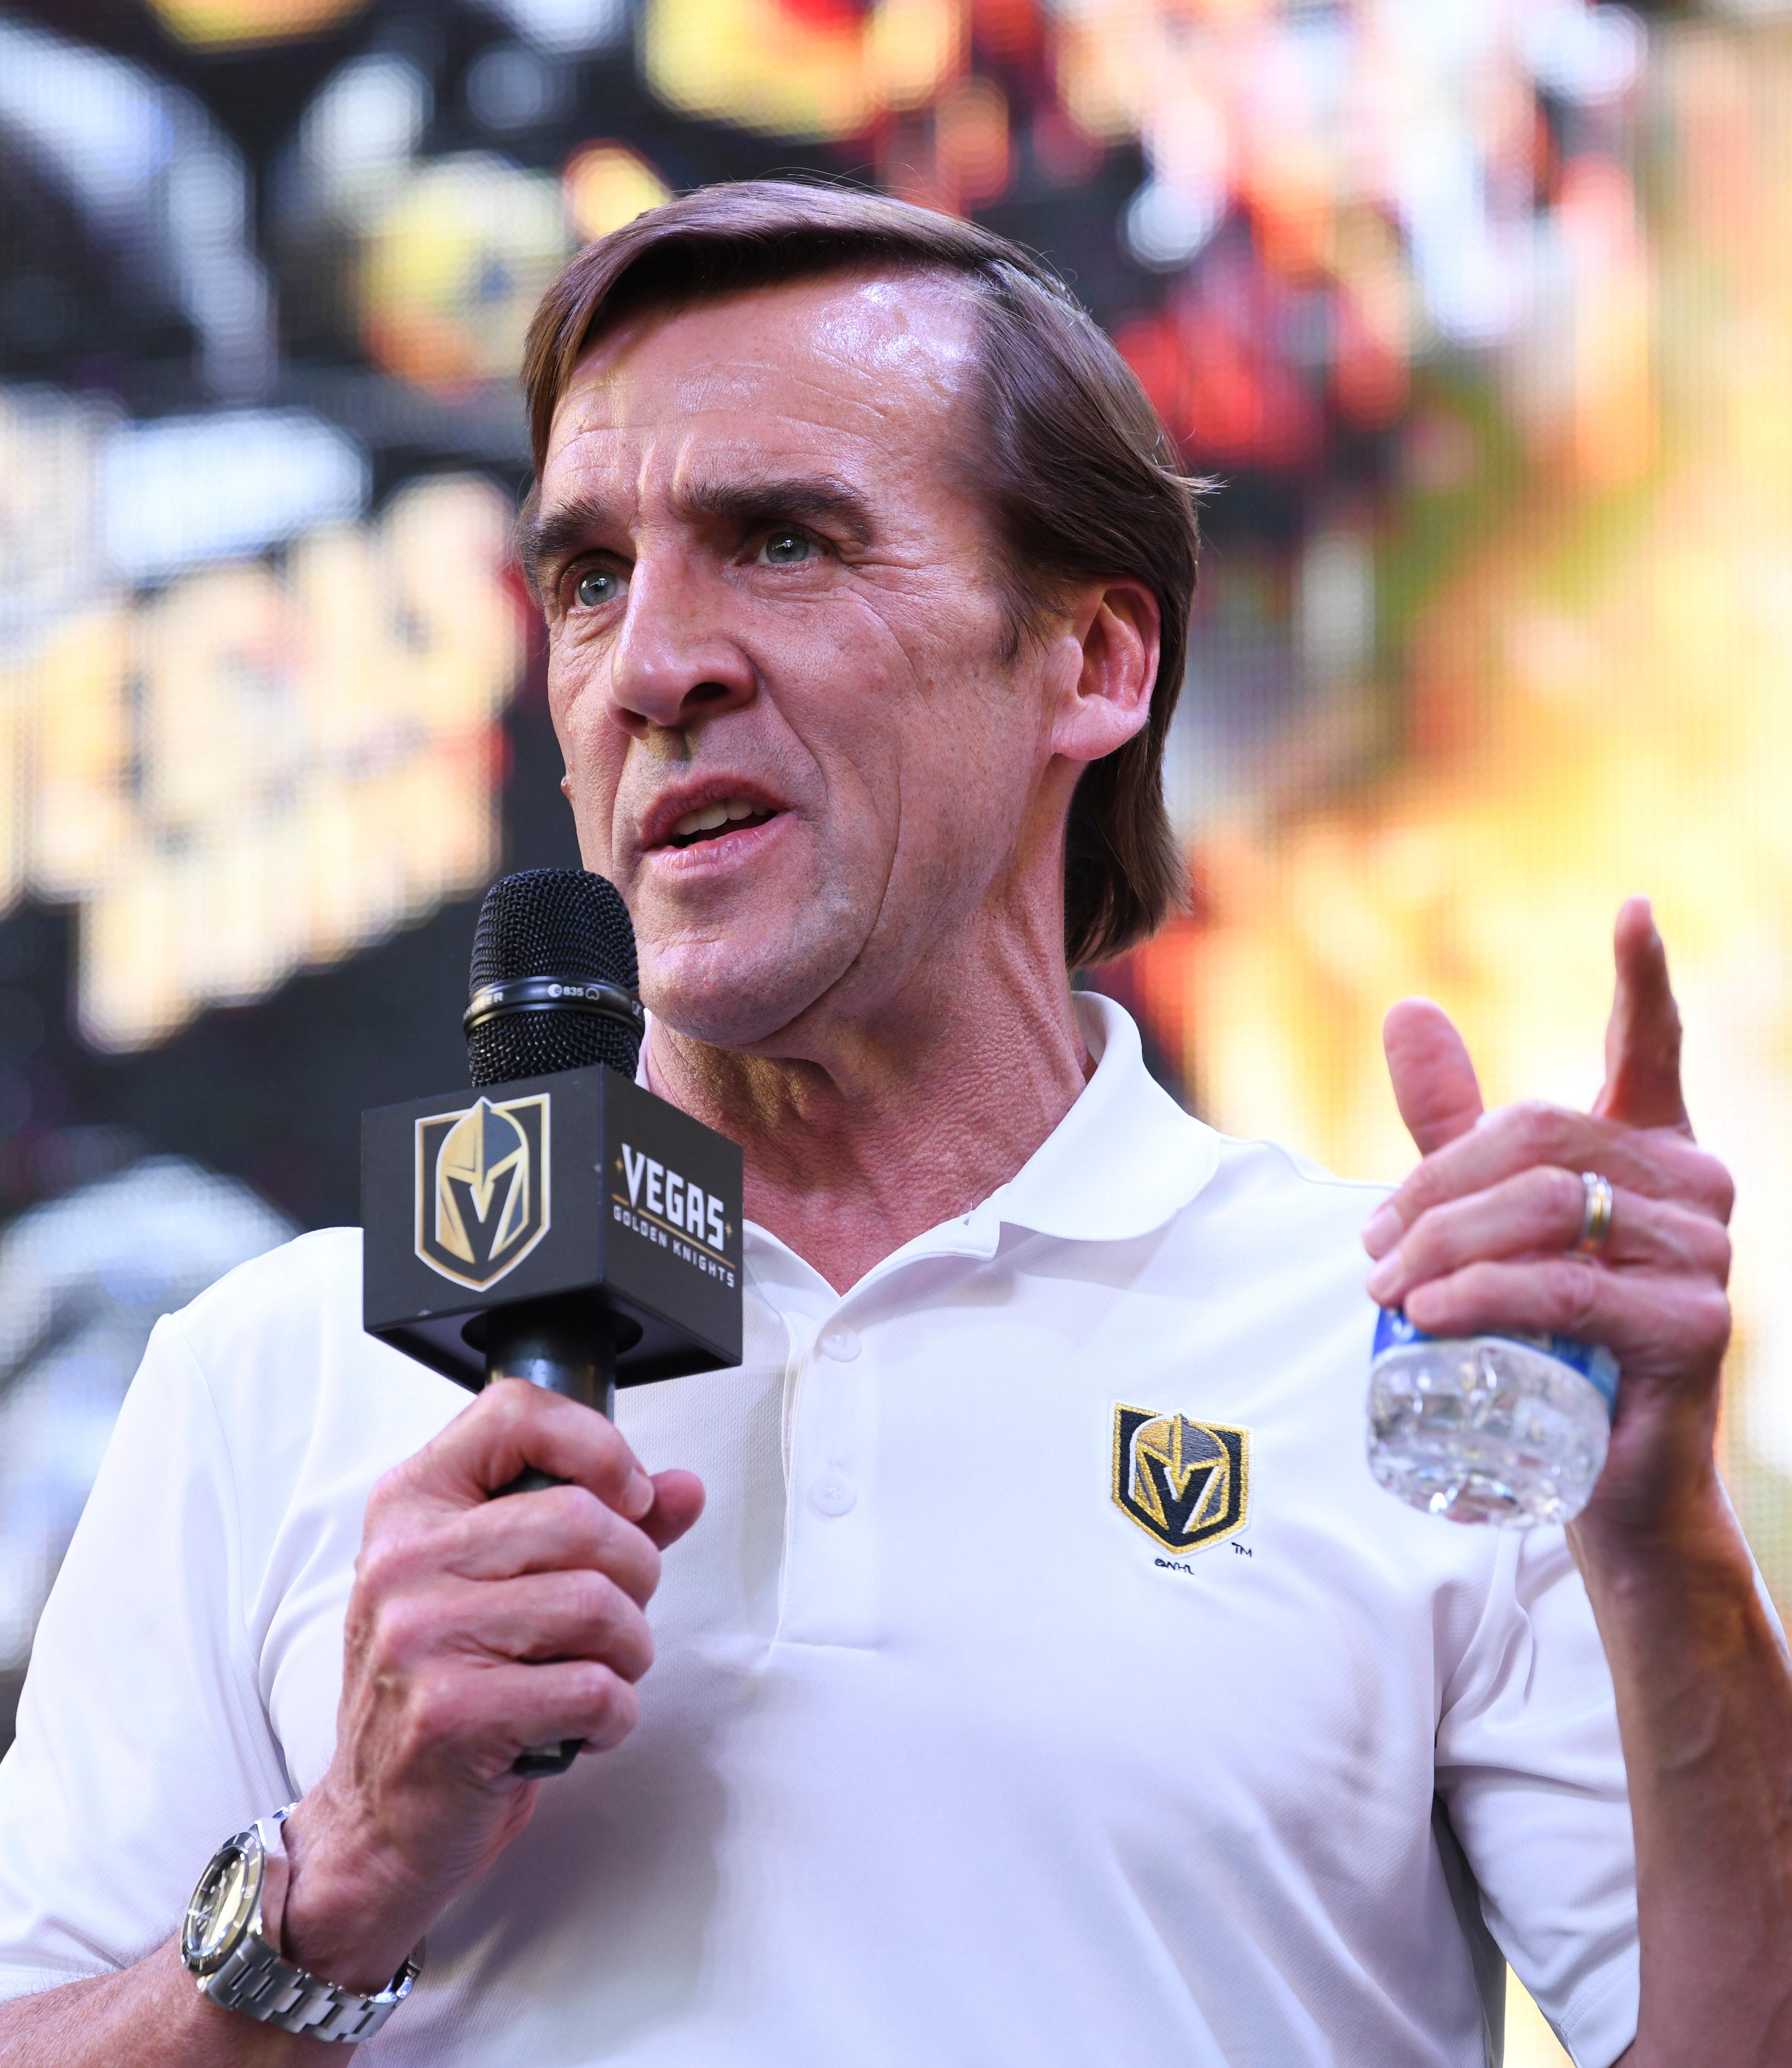 Vegas Golden Knights general manager George McPhee speaks during a Vegas Golden Knights Stick Salute to Vegas fan appreciation rally at the Fremont Street Experience Wednesday, June 13, 2018. CREDIT: Sam Morris/Las Vegas News Bureau